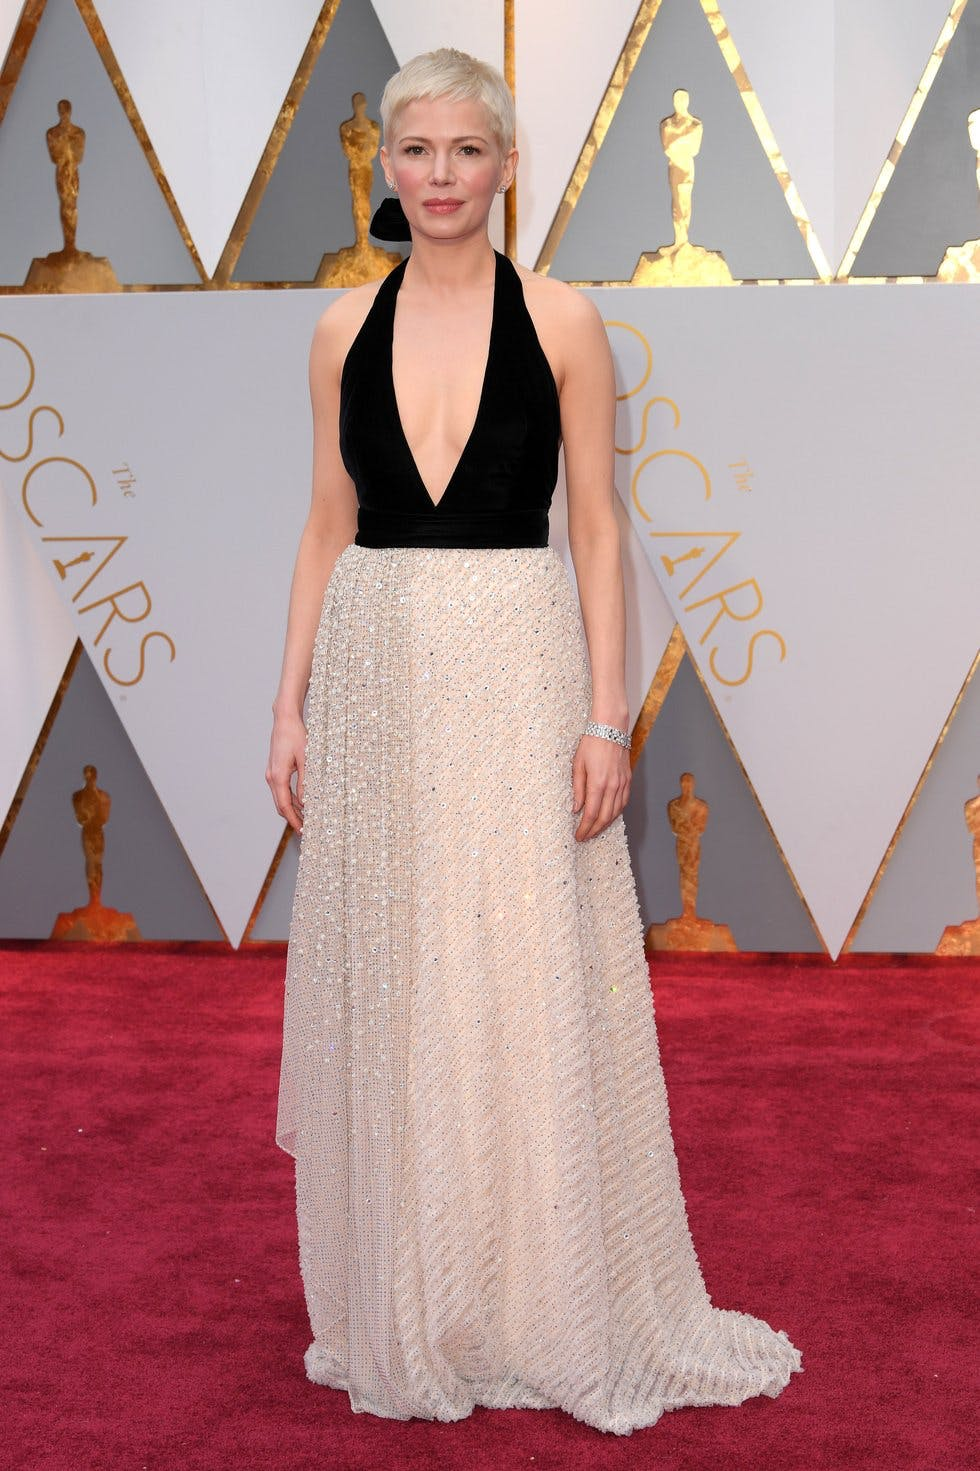 f945b99ca Michelle Williams' Louis Vuitton gown gives romance an edge by combining a  pale beaded skirt and deep plunge black top.